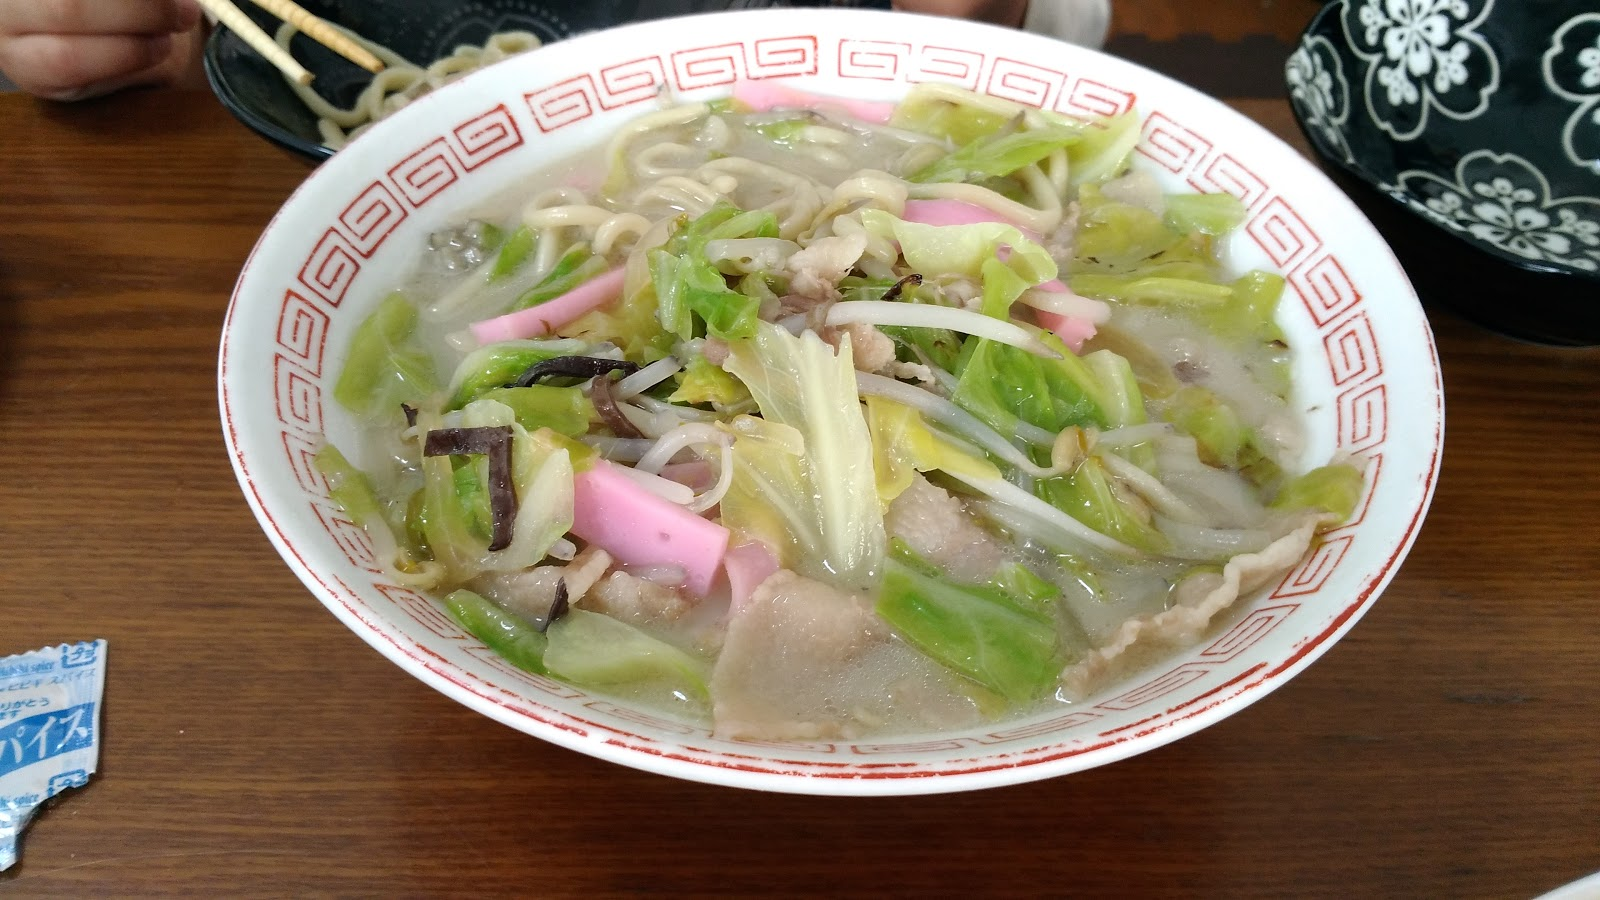 【One doubt ...】 If you go to Nagasaki city for dish udon, sauce comes in the bottle of Lipovitan D! How about returning the bottle?